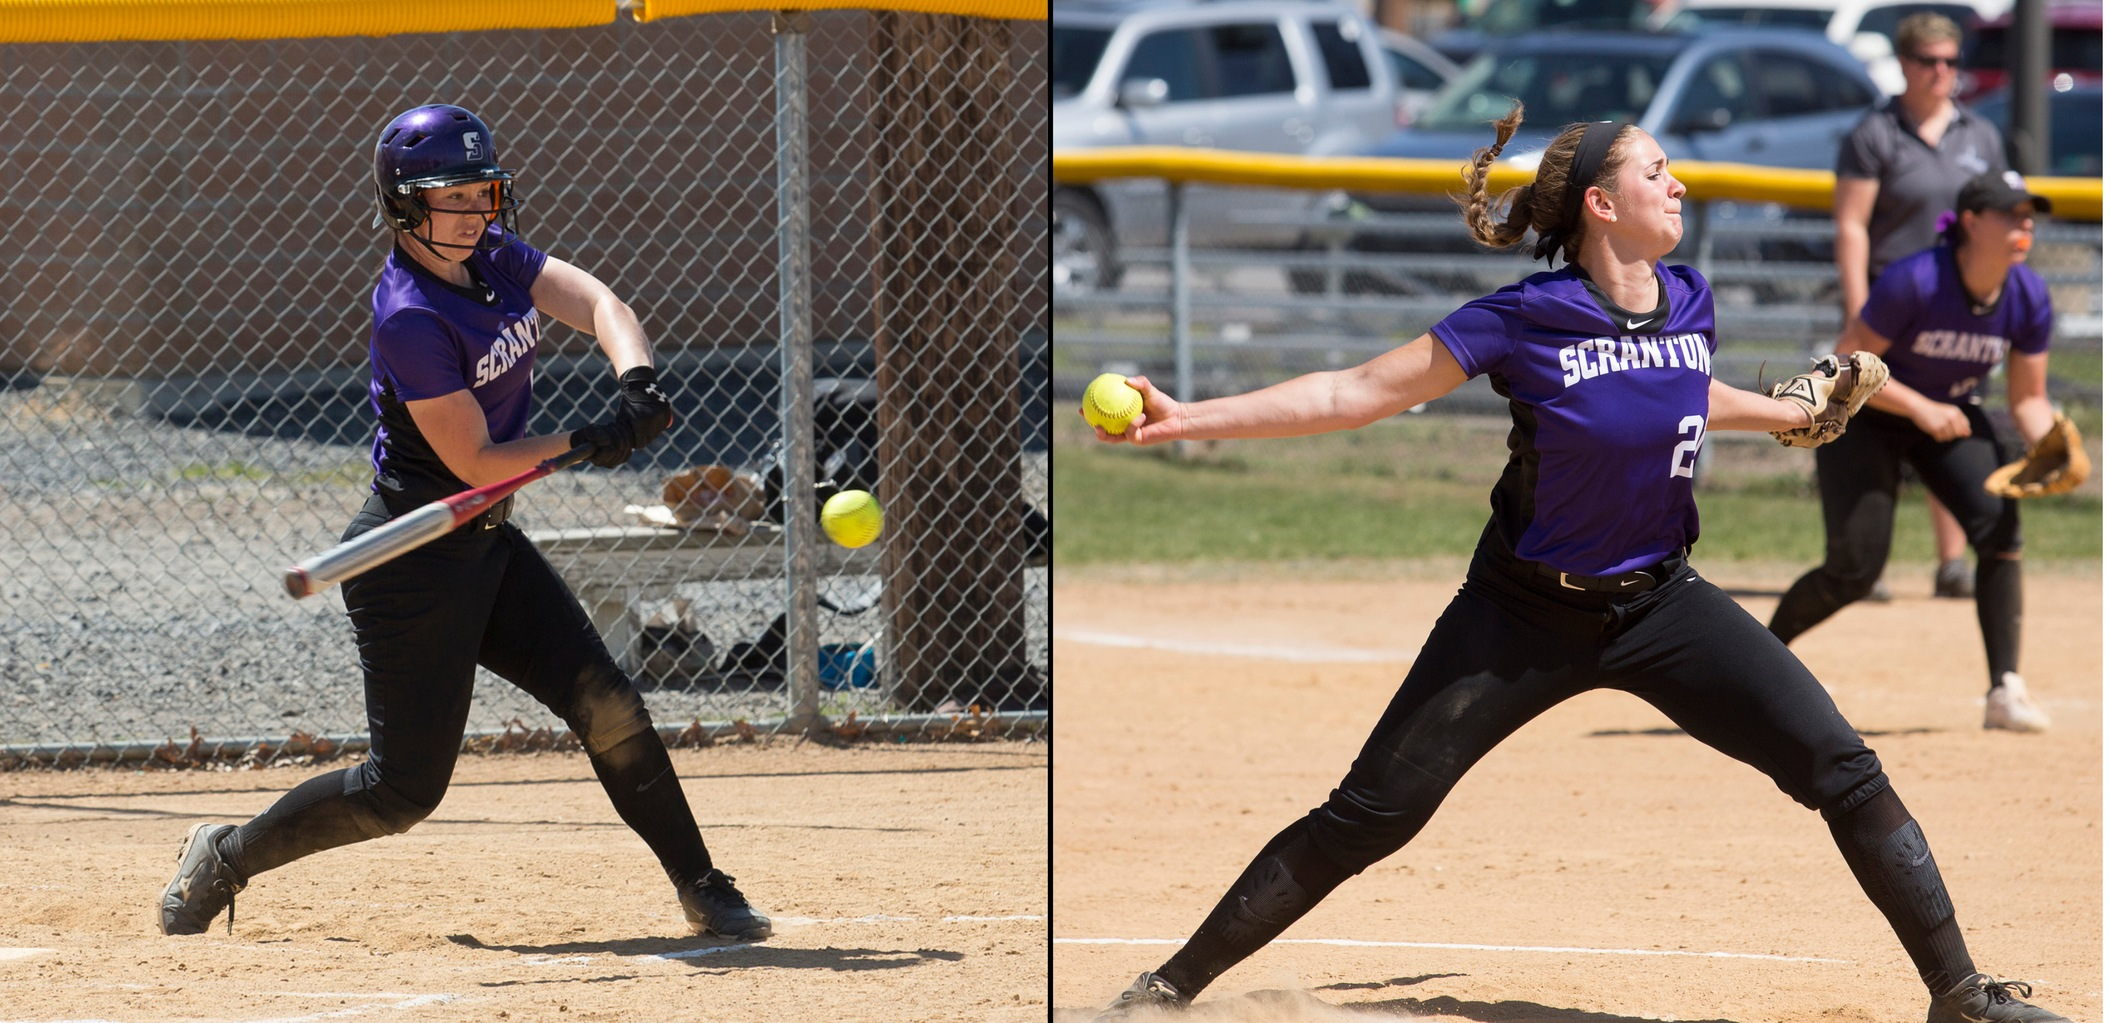 Shannon Stricker (left) was named the Landmark Conference's softball Athlete of the Week for the fourth time in her career on Monday, while Morgan Renzheimer (right) earned Landmark Pitcher of the Week honors.